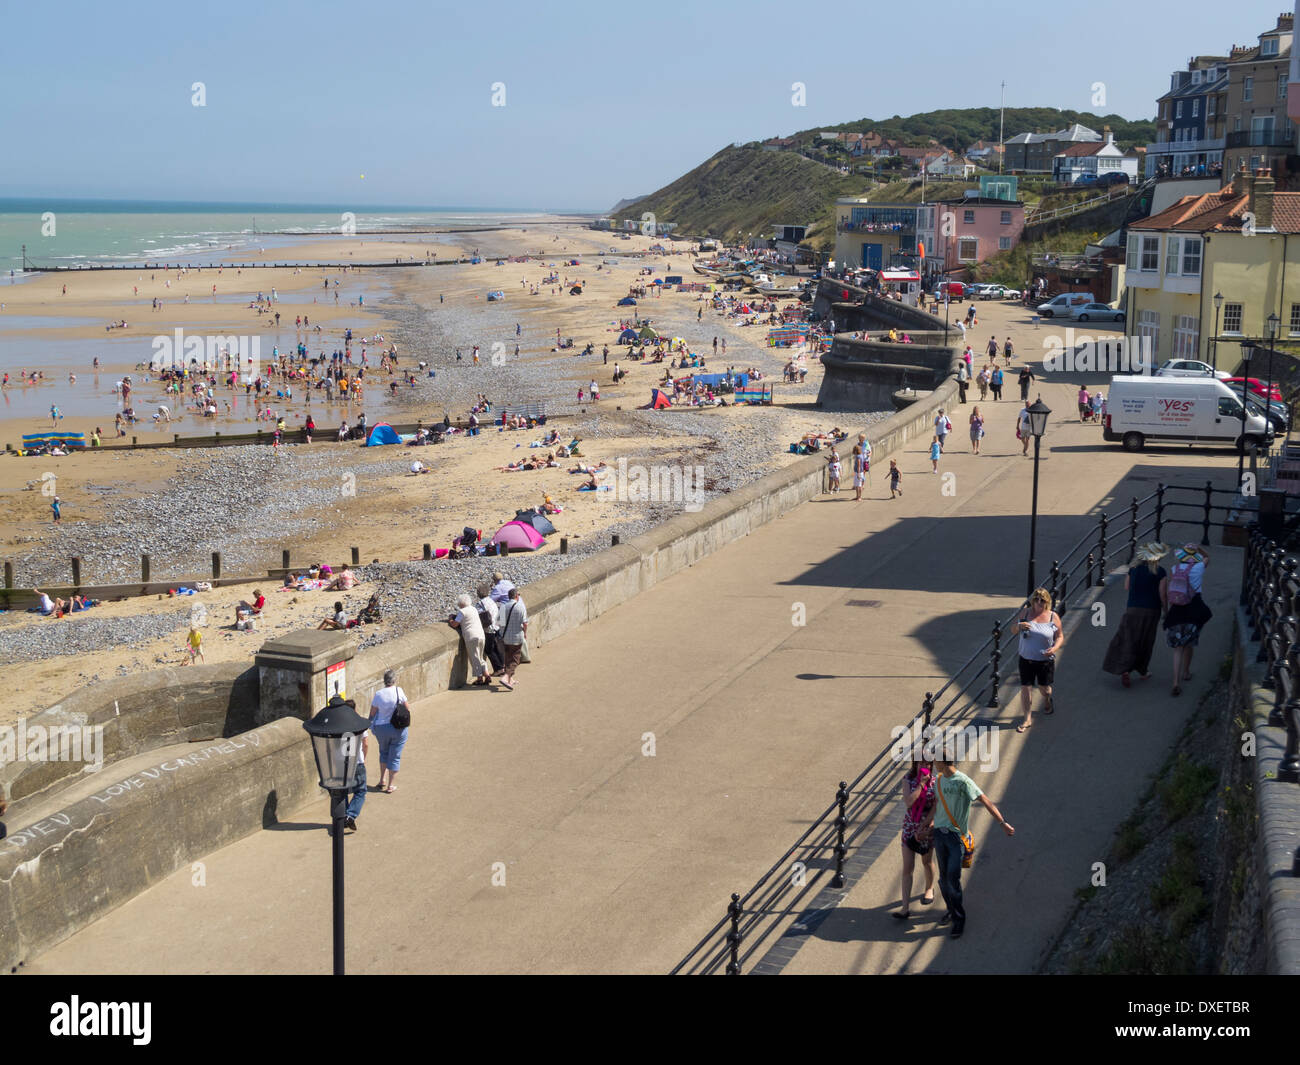 Cromer seafront and promenade with crowds of holidaymakers on the beach Norfolk East Anglia England - Stock Image